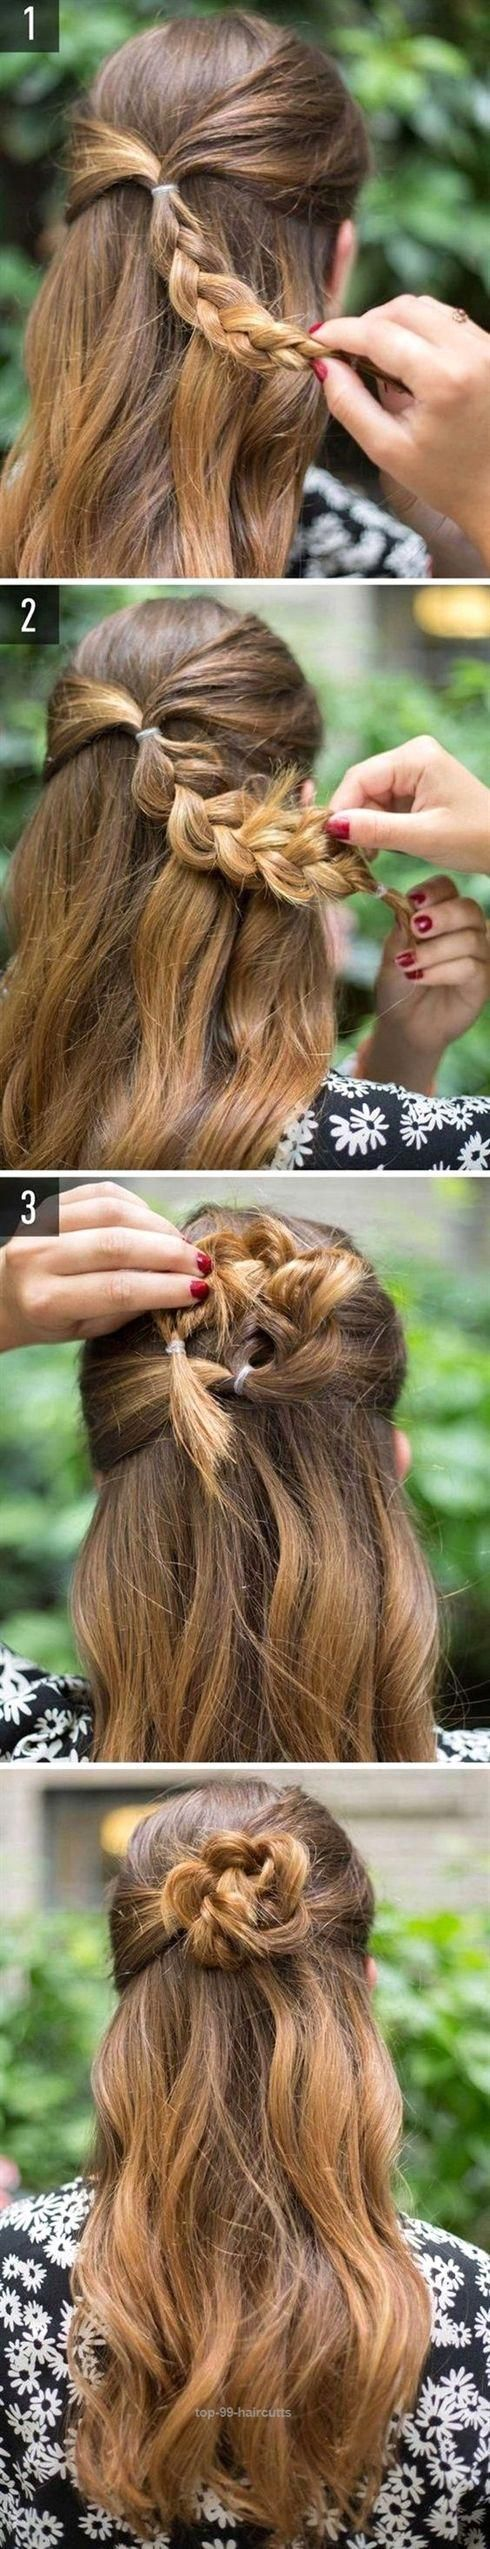 Terrific easy hairstyles for schools to try in quick easy